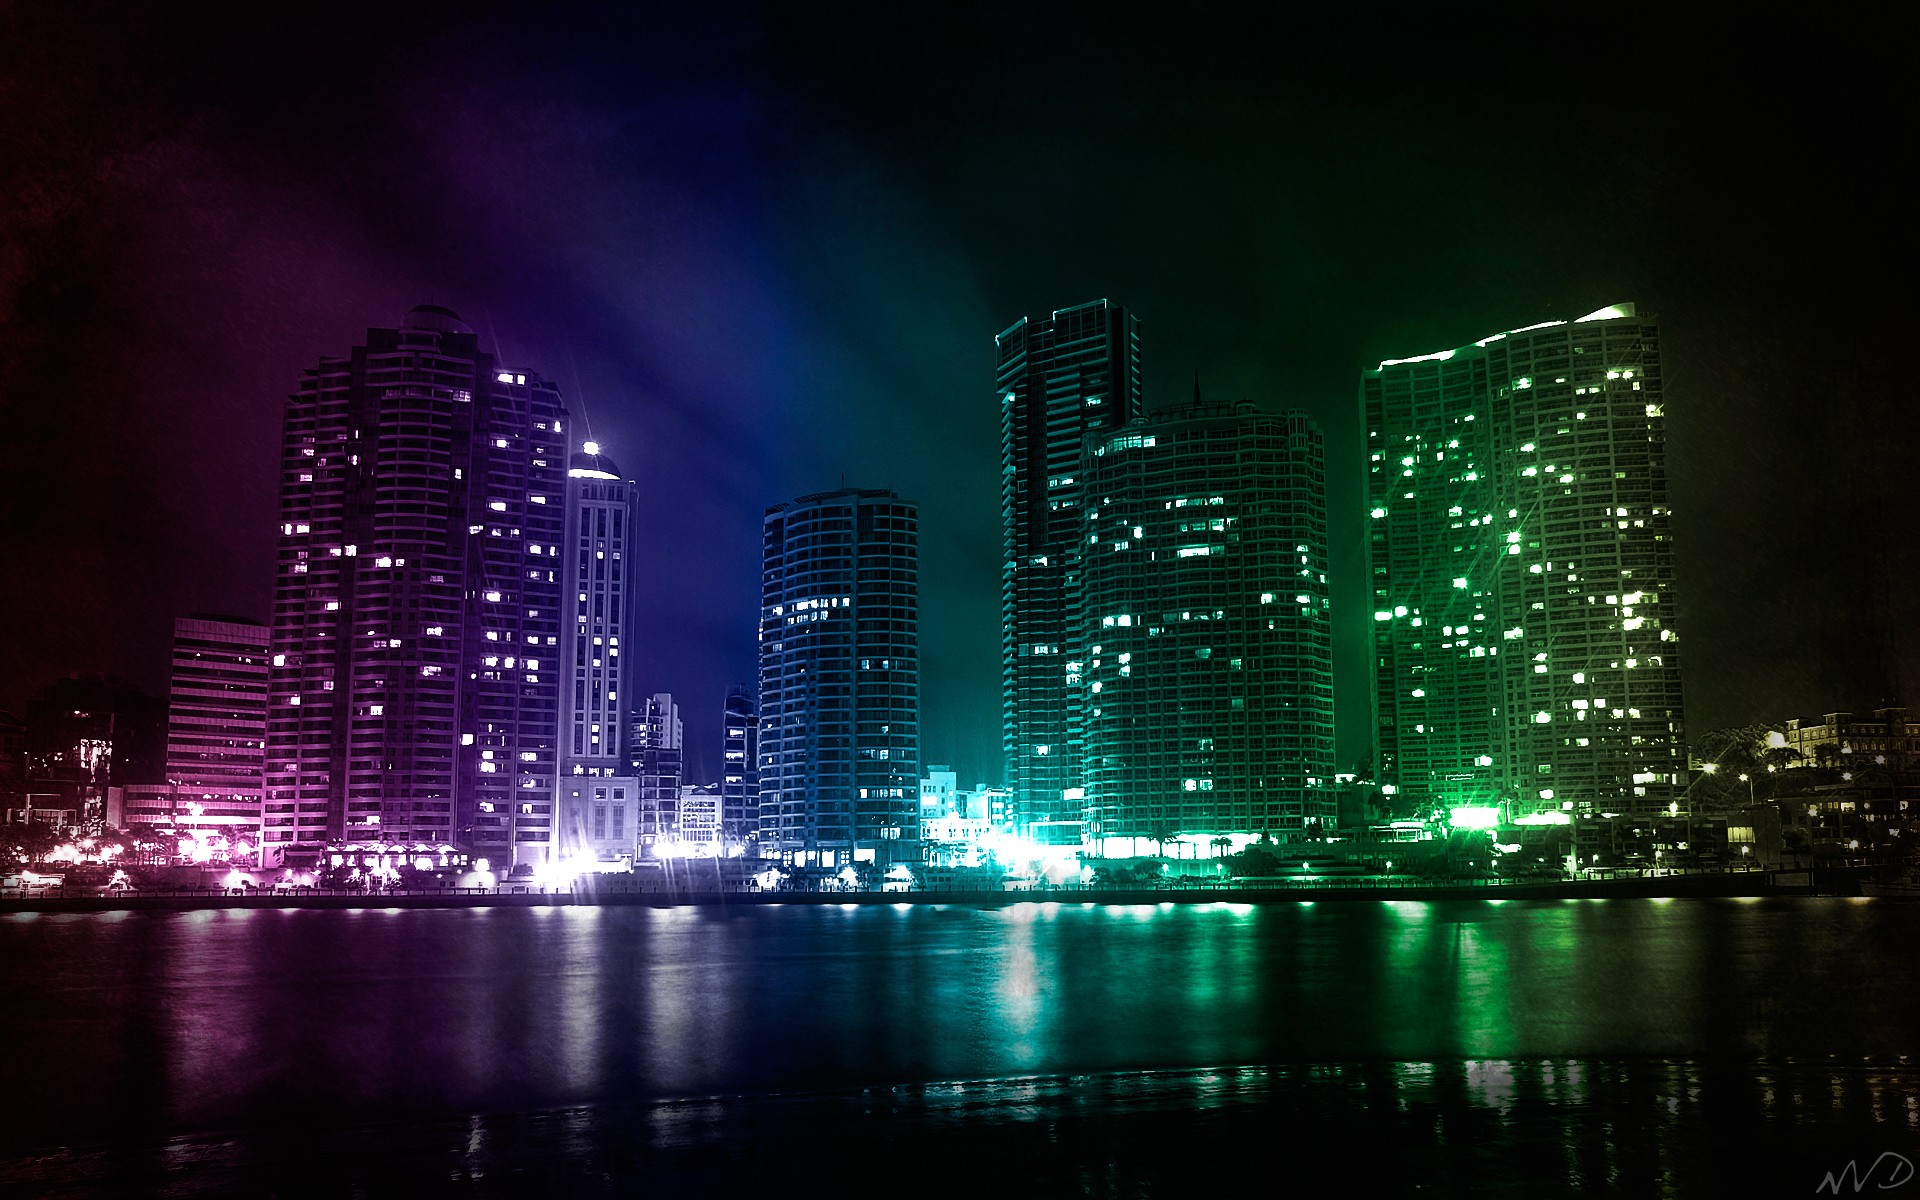 Cool City Wallpapers - WallpaperSafari